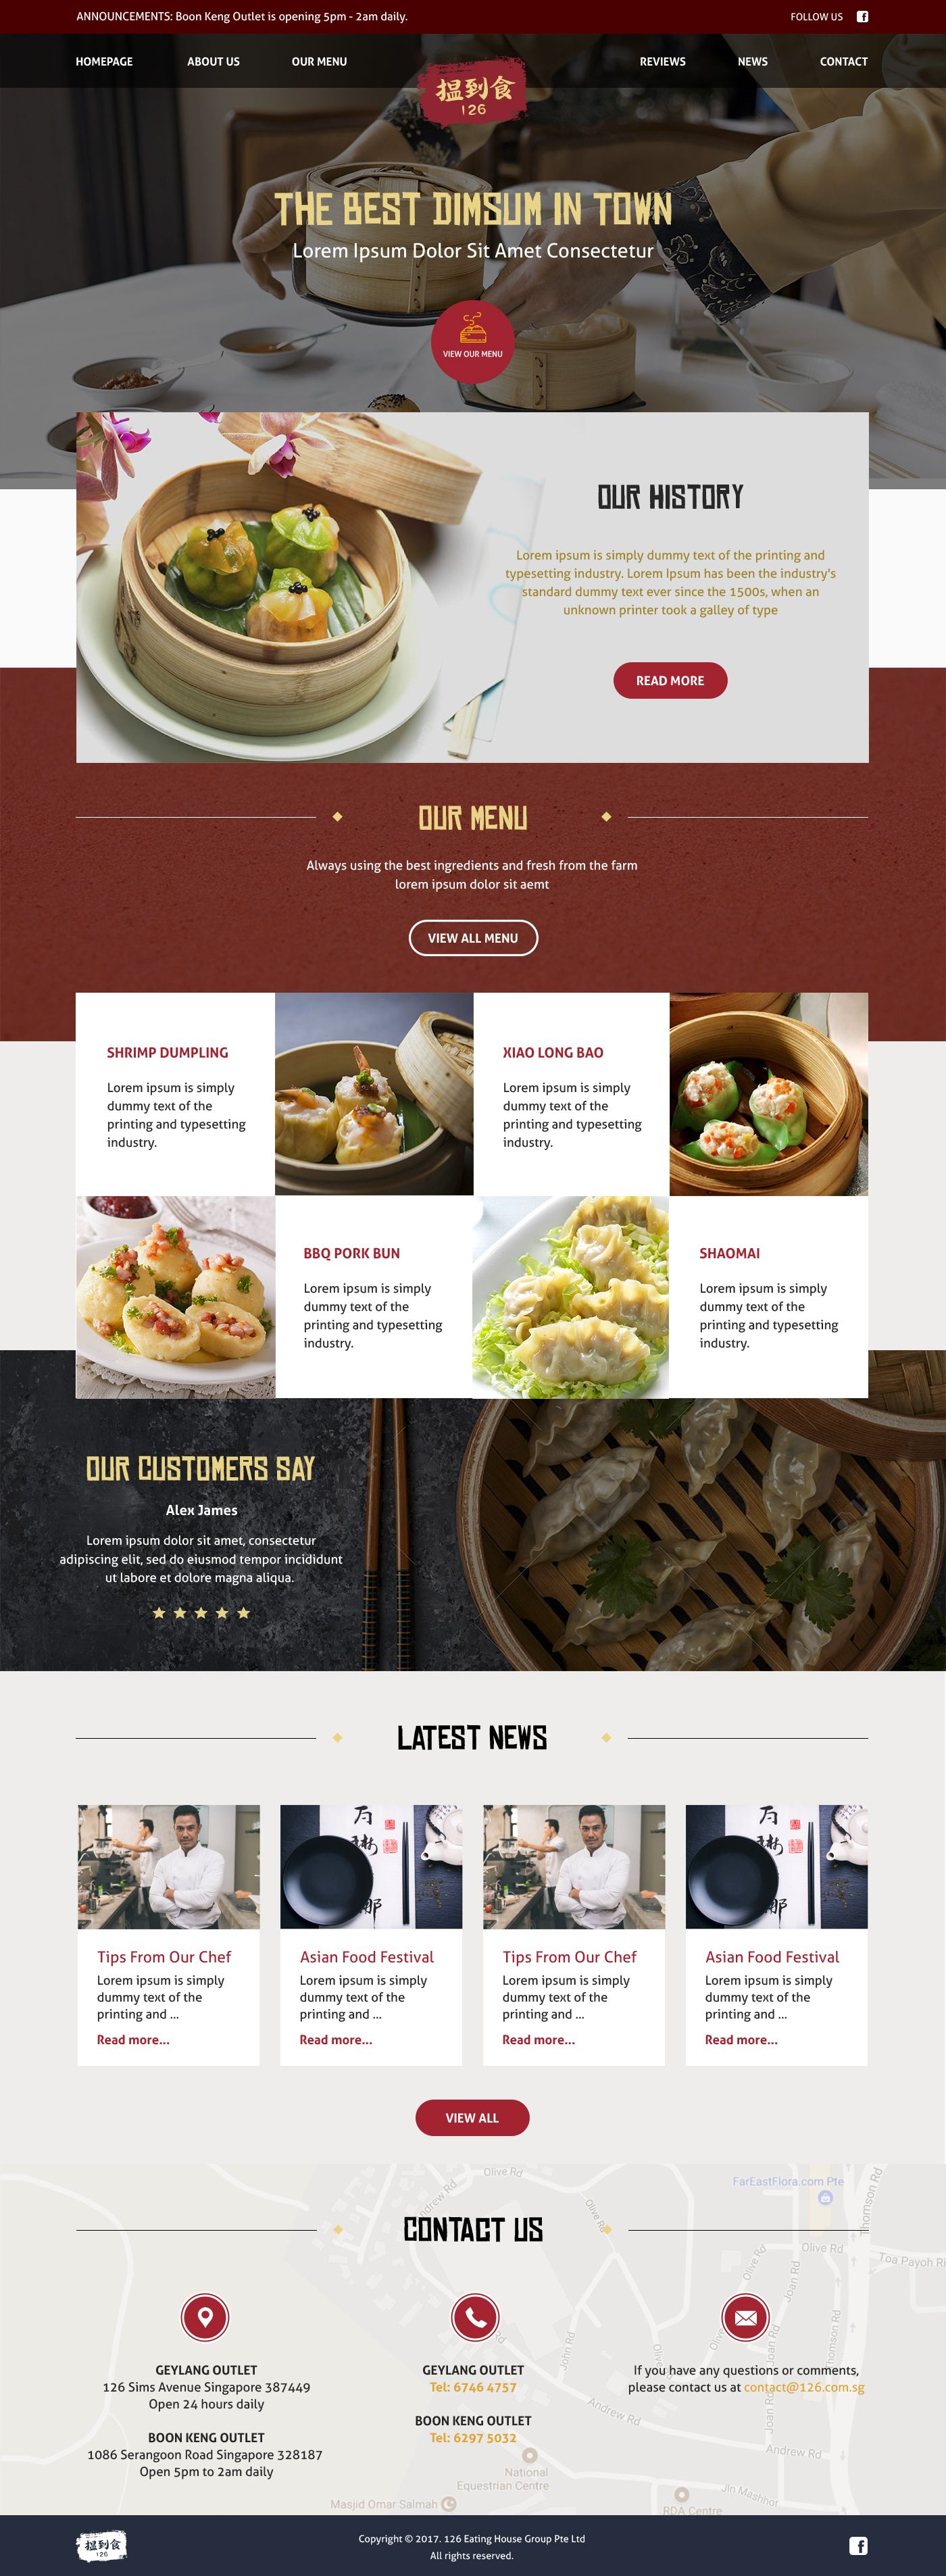 Dimsum Online Shop Design Restaurant Chinese Food Food Website Design Food Web Design Food Website